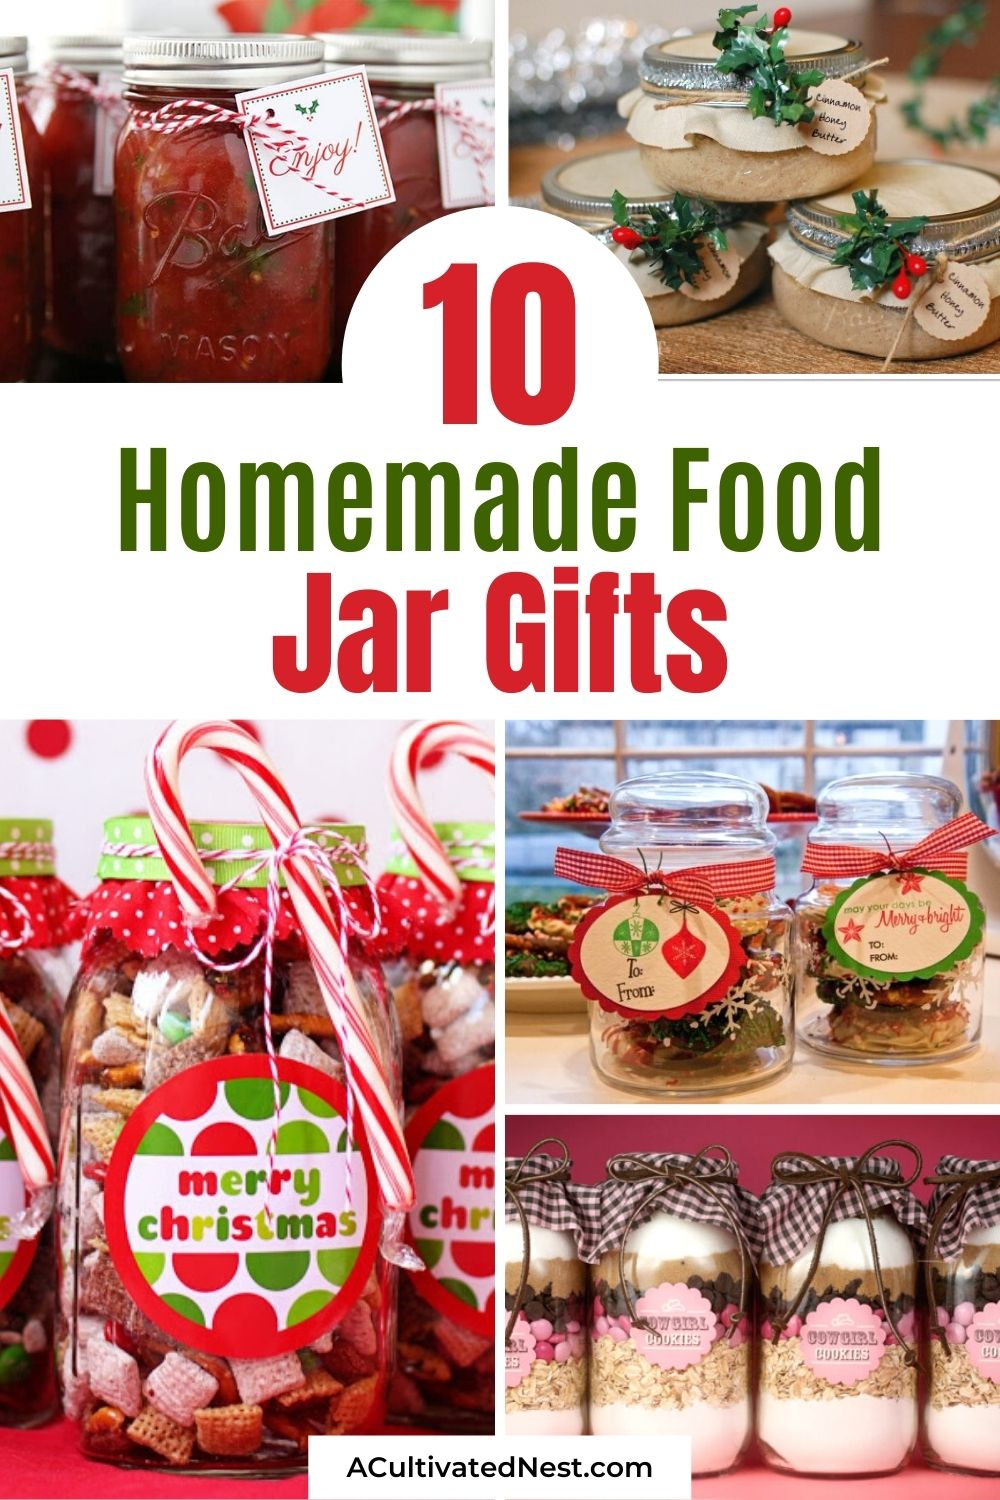 10 Homemade Gifts In a Jar From Your Kitchen- Food gifts are very thoughtful, and are perfect for the person who seems to have everything! For some thoughtful and frugal food gift ideas, check out these 10 homemade gifts in a jar you can make from ingredients already in your kitchen!   #homemadeGiftIdeas #foodGifts #masonJarGifts #desserts #ACultivatedNest